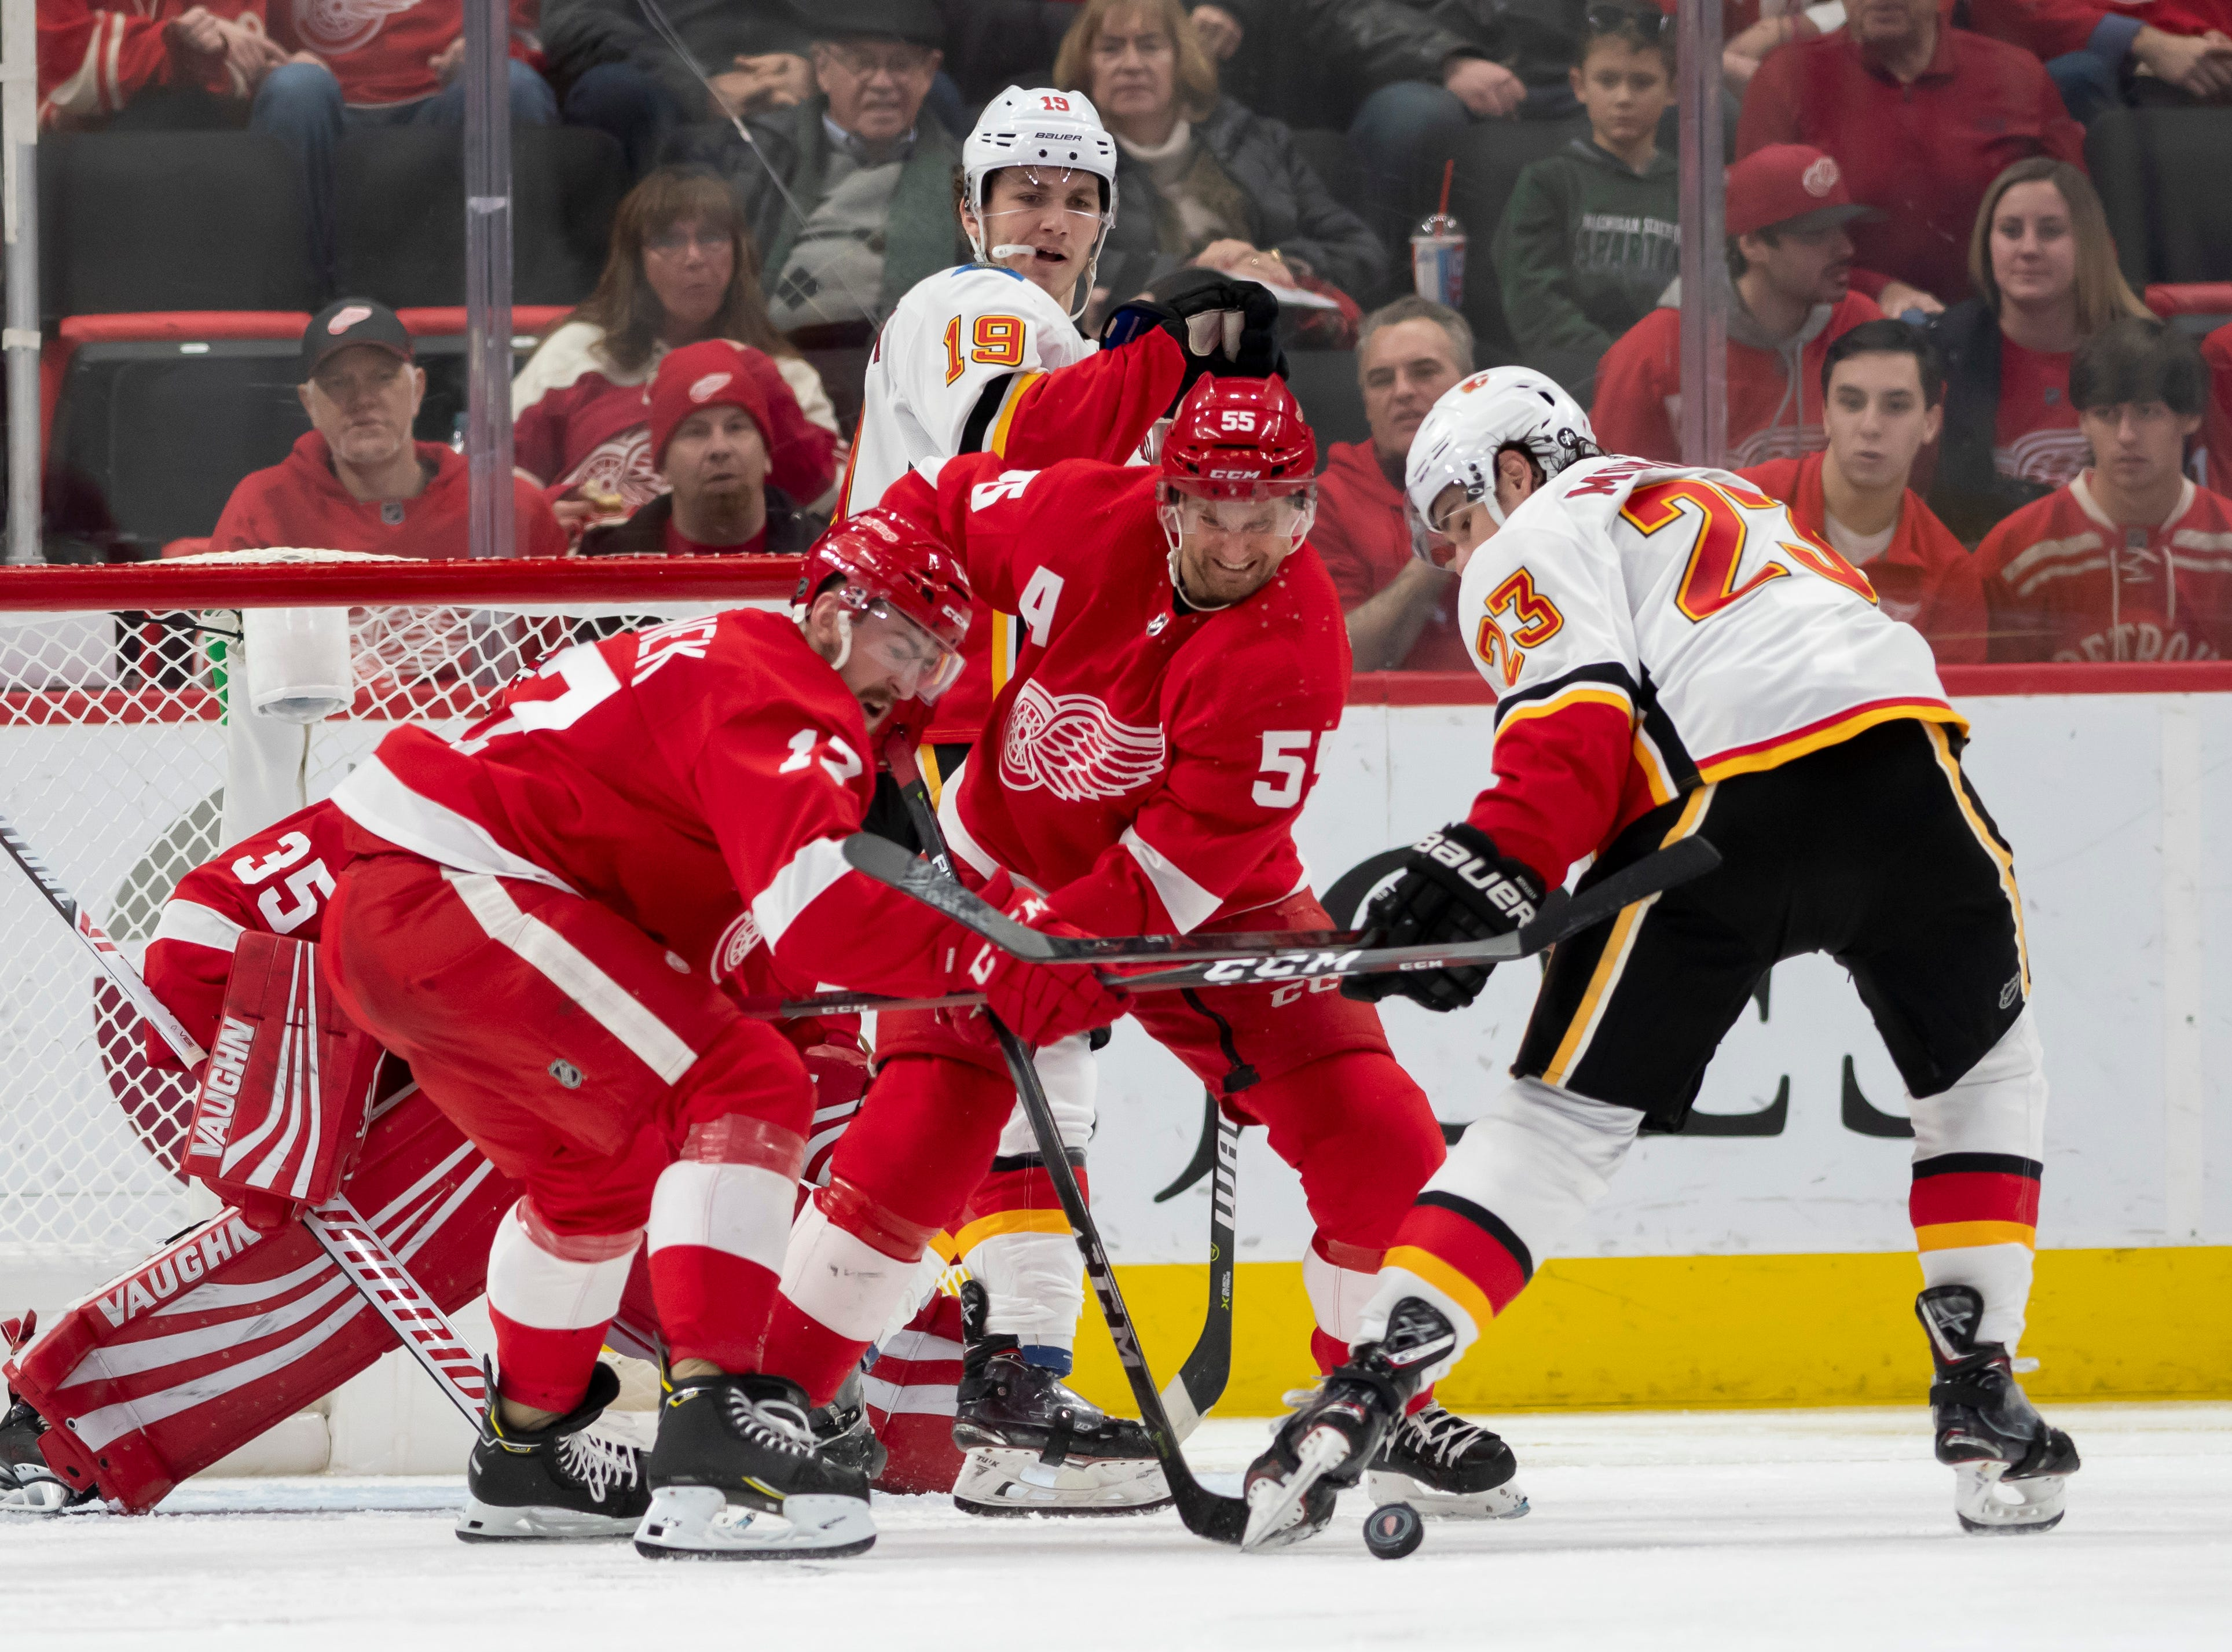 (From left) Detroit defenseman Filip Hronek, defenseman Niklas Kronwall, and Calgary center Sean Monahan battle for the puck in the third period.